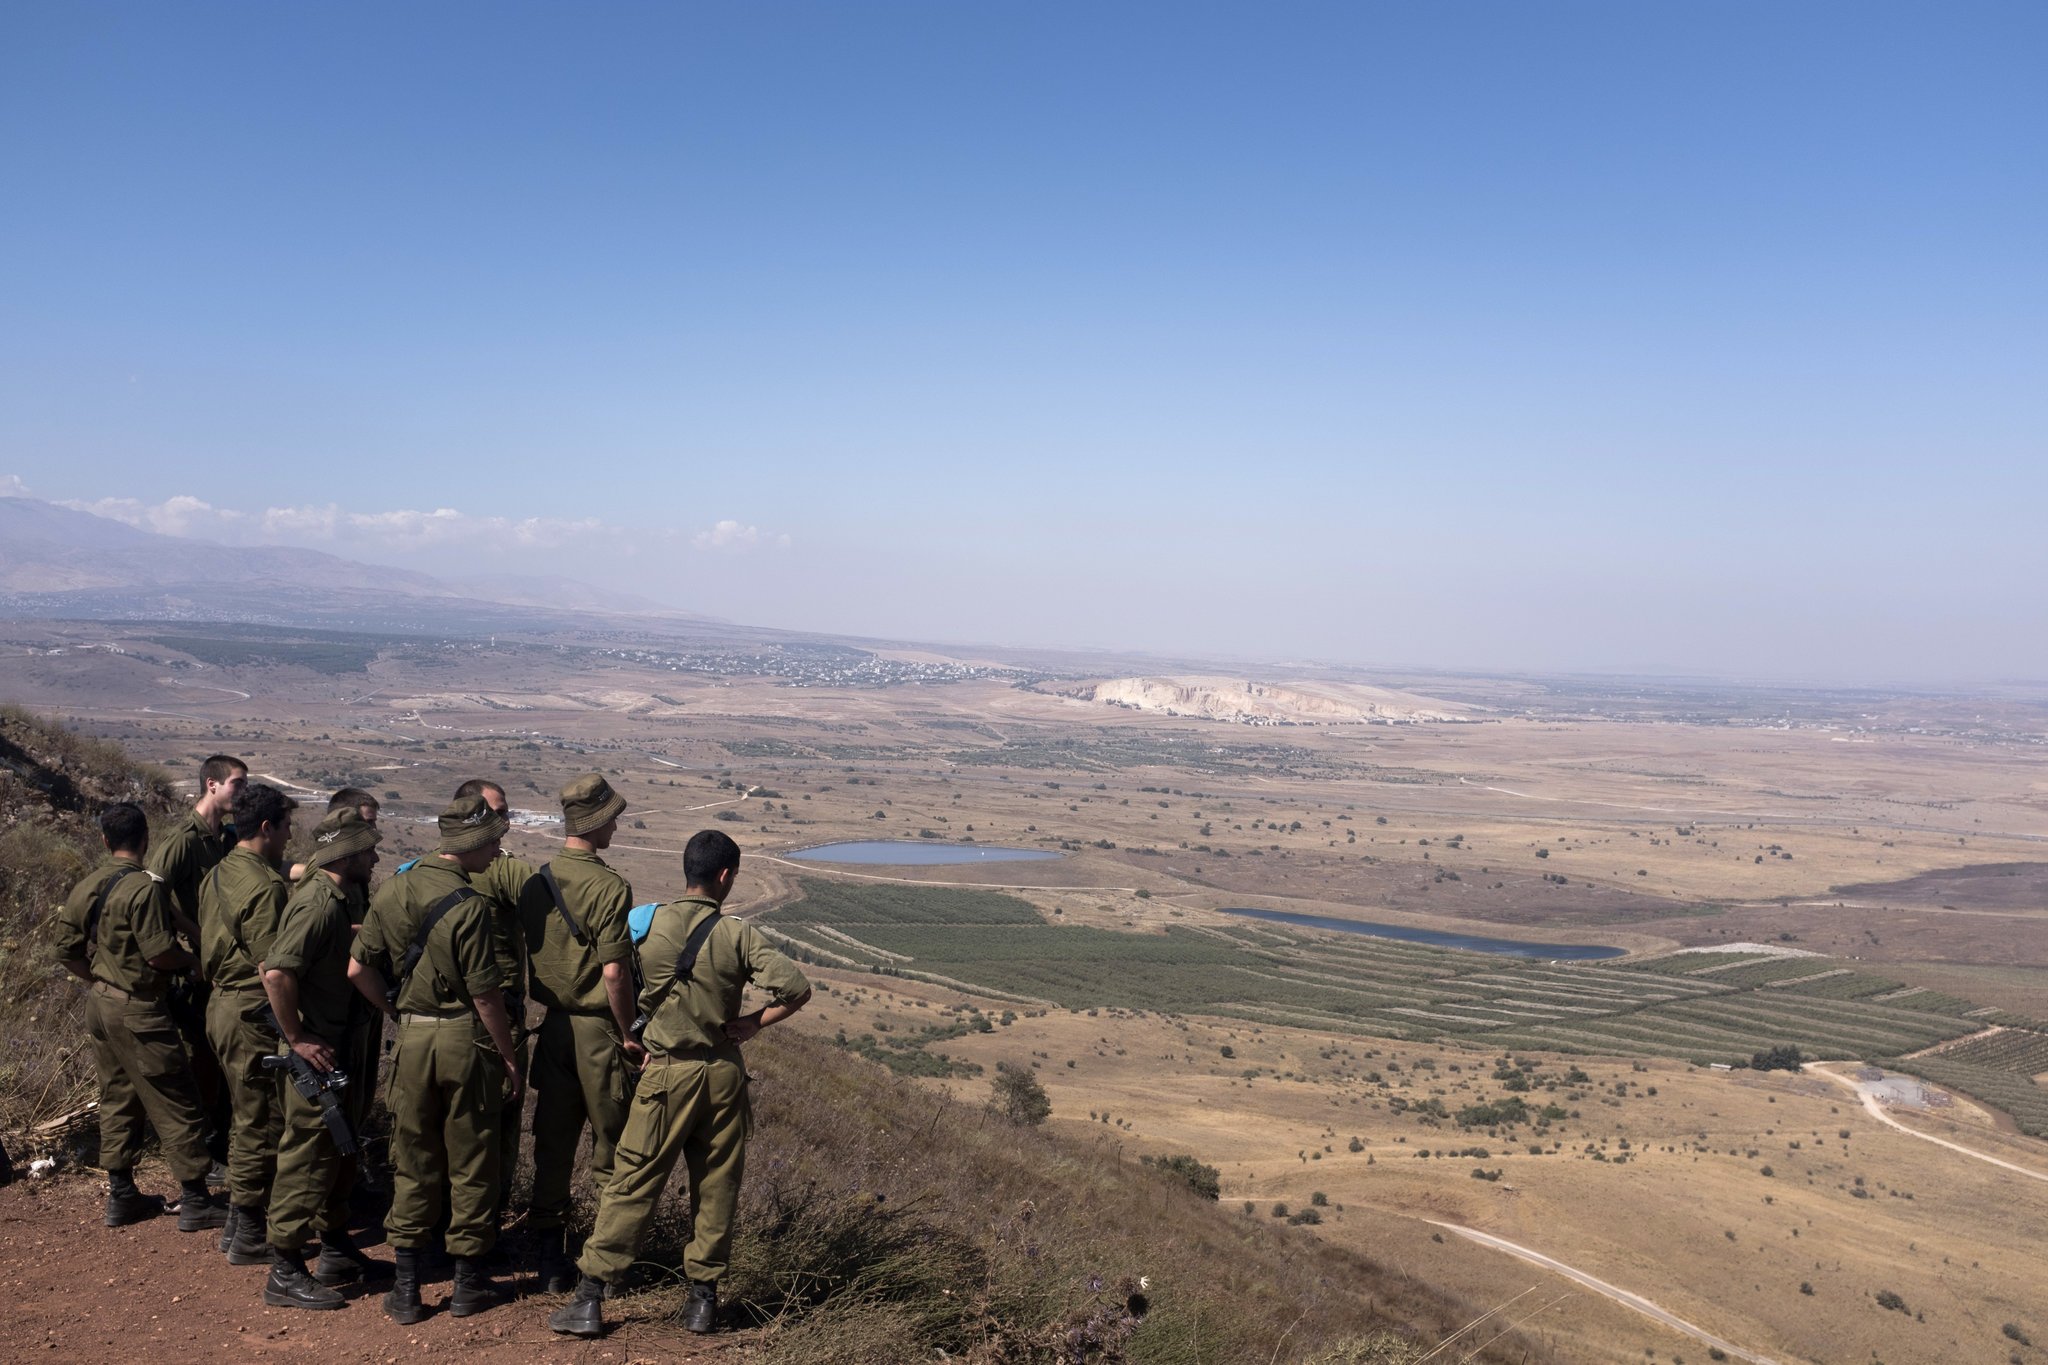 Israeli soldiers looking toward Syria from an observation point in the Golan Heights last year. Israel seized the Golan Heights from Syria in 1967. Credit Lior Mizrahi/Getty Images